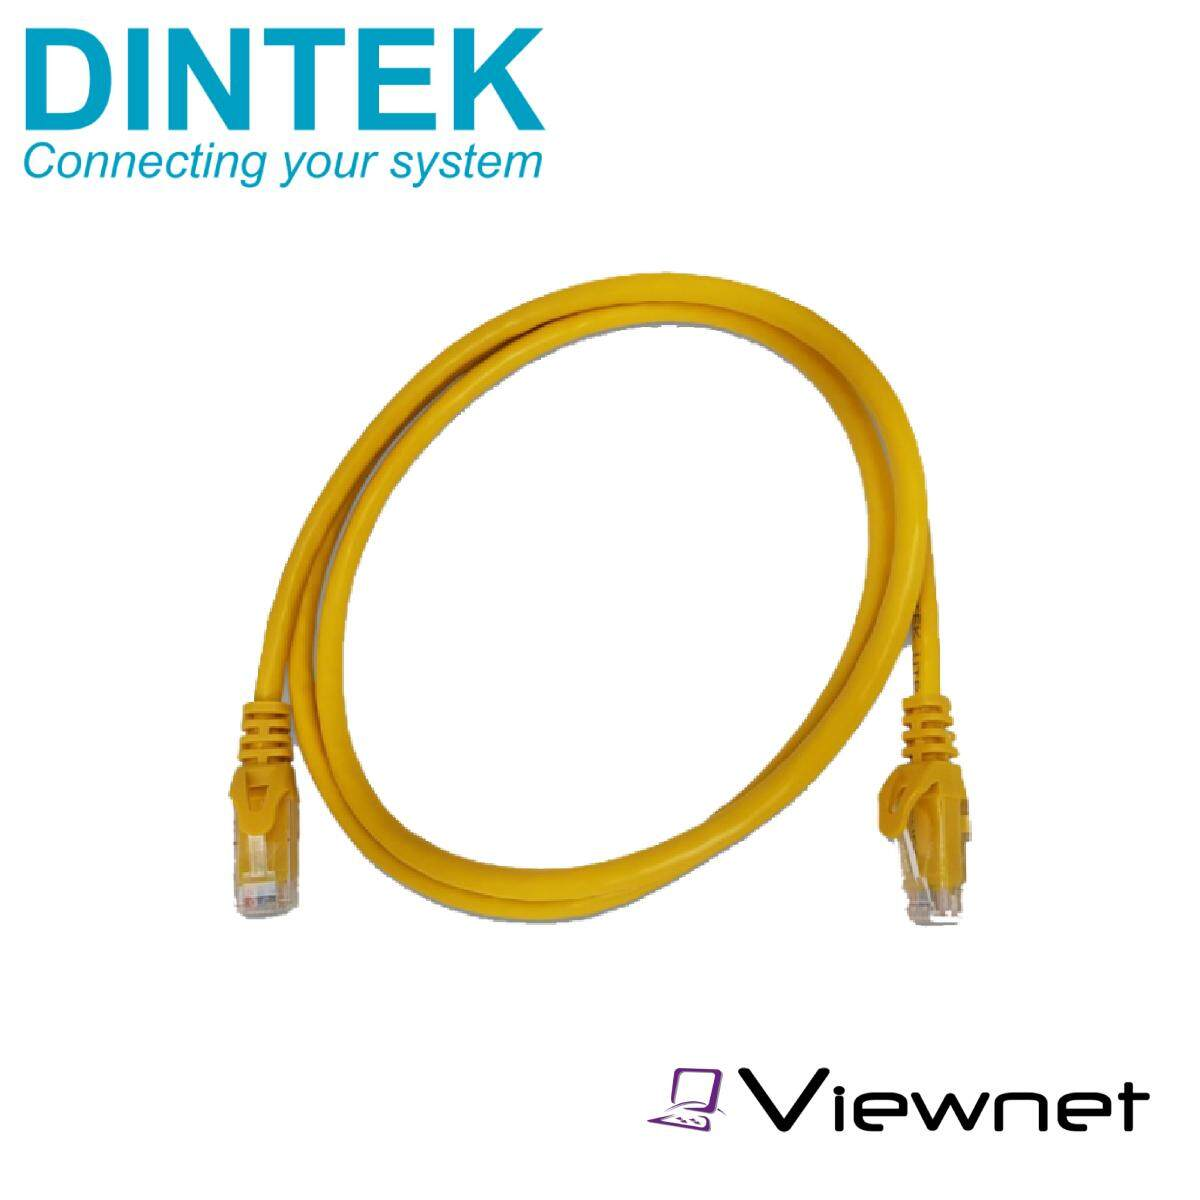 Dintek CAT6 3 Meter Cable Patch Cord (Black/Grey/Orange/Purple/Red/White/Yellow)